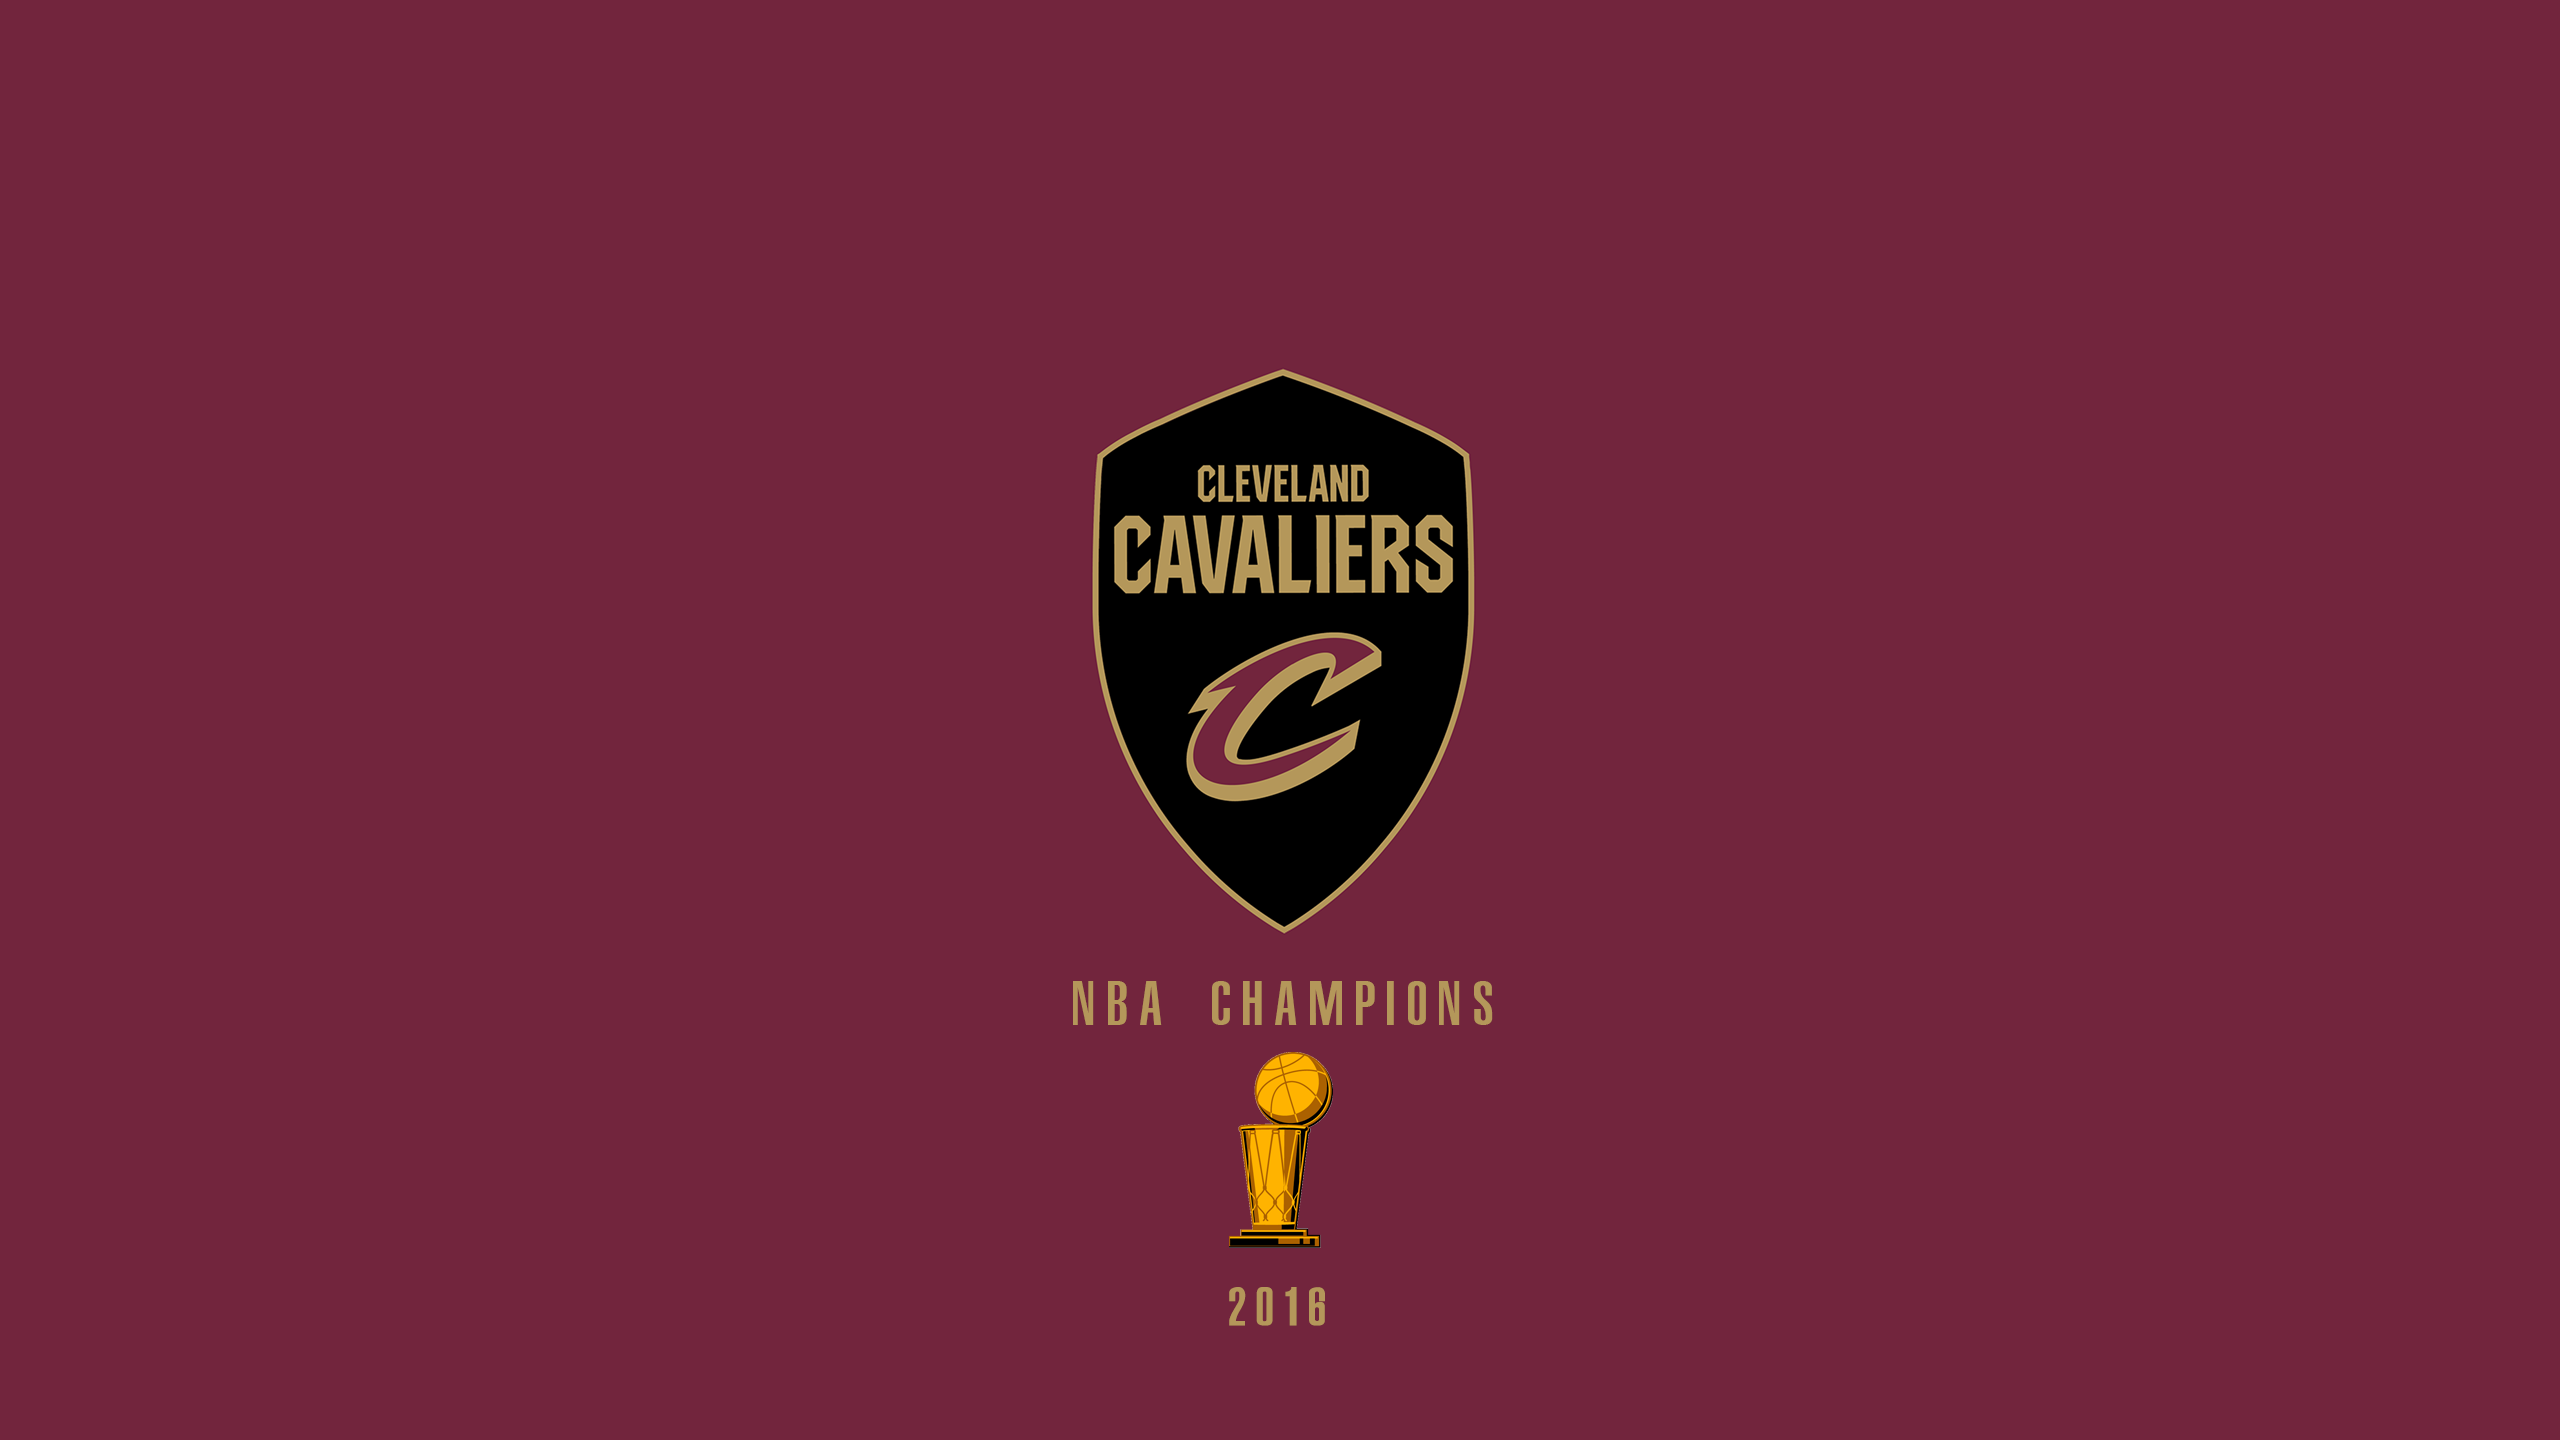 Cleveland Cavaliers – NBA Champs